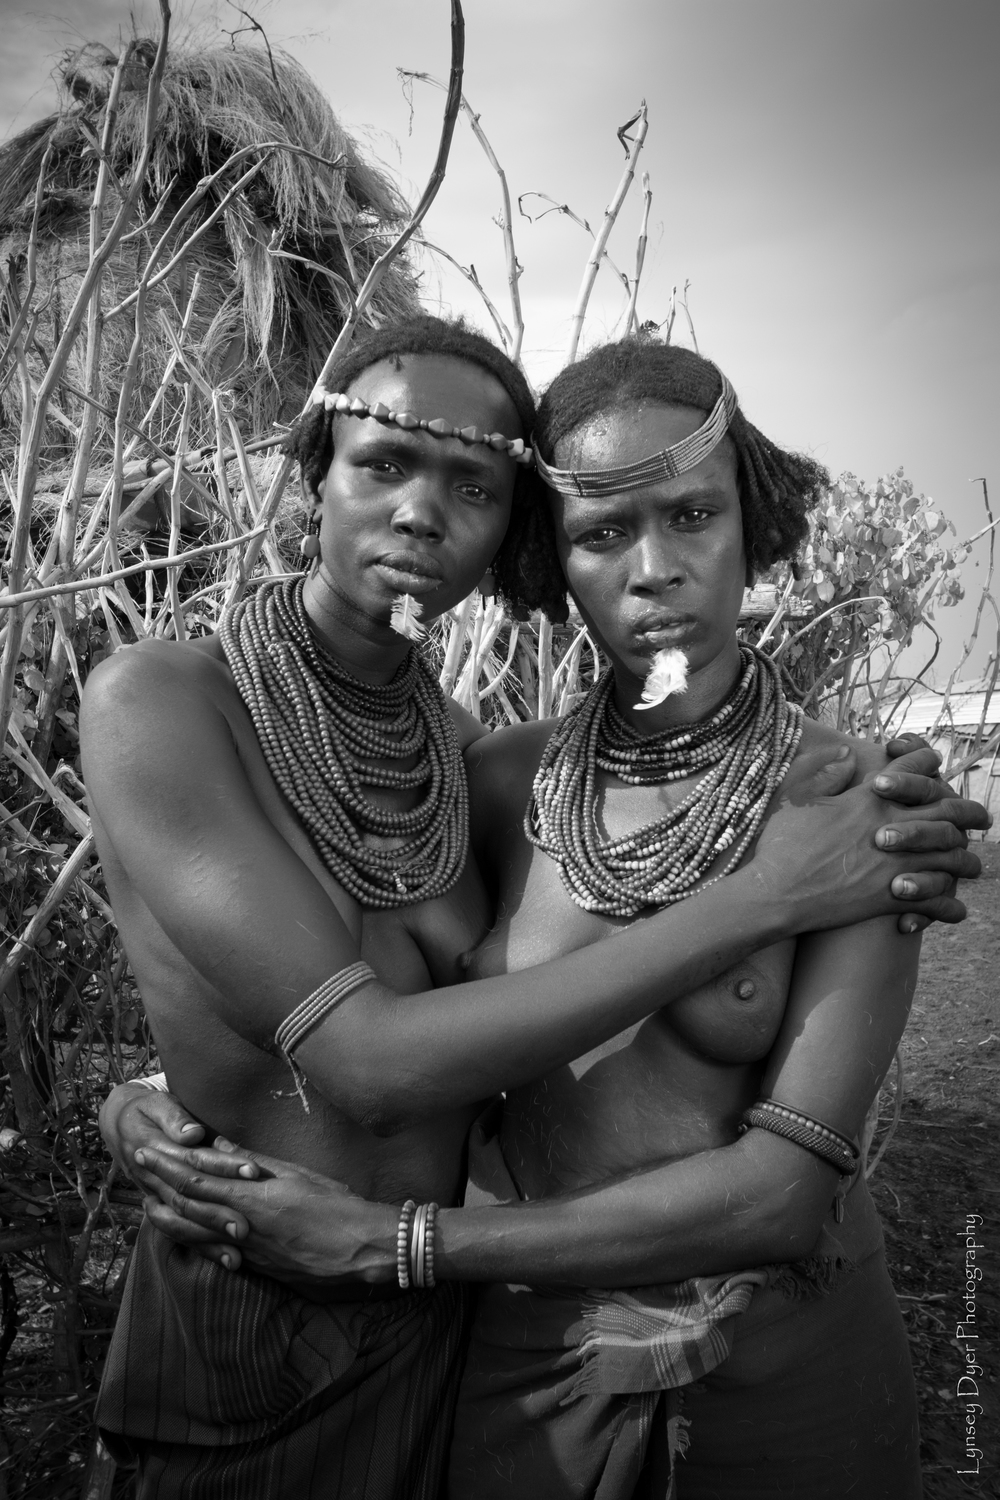 15. The Dassanech Tribe